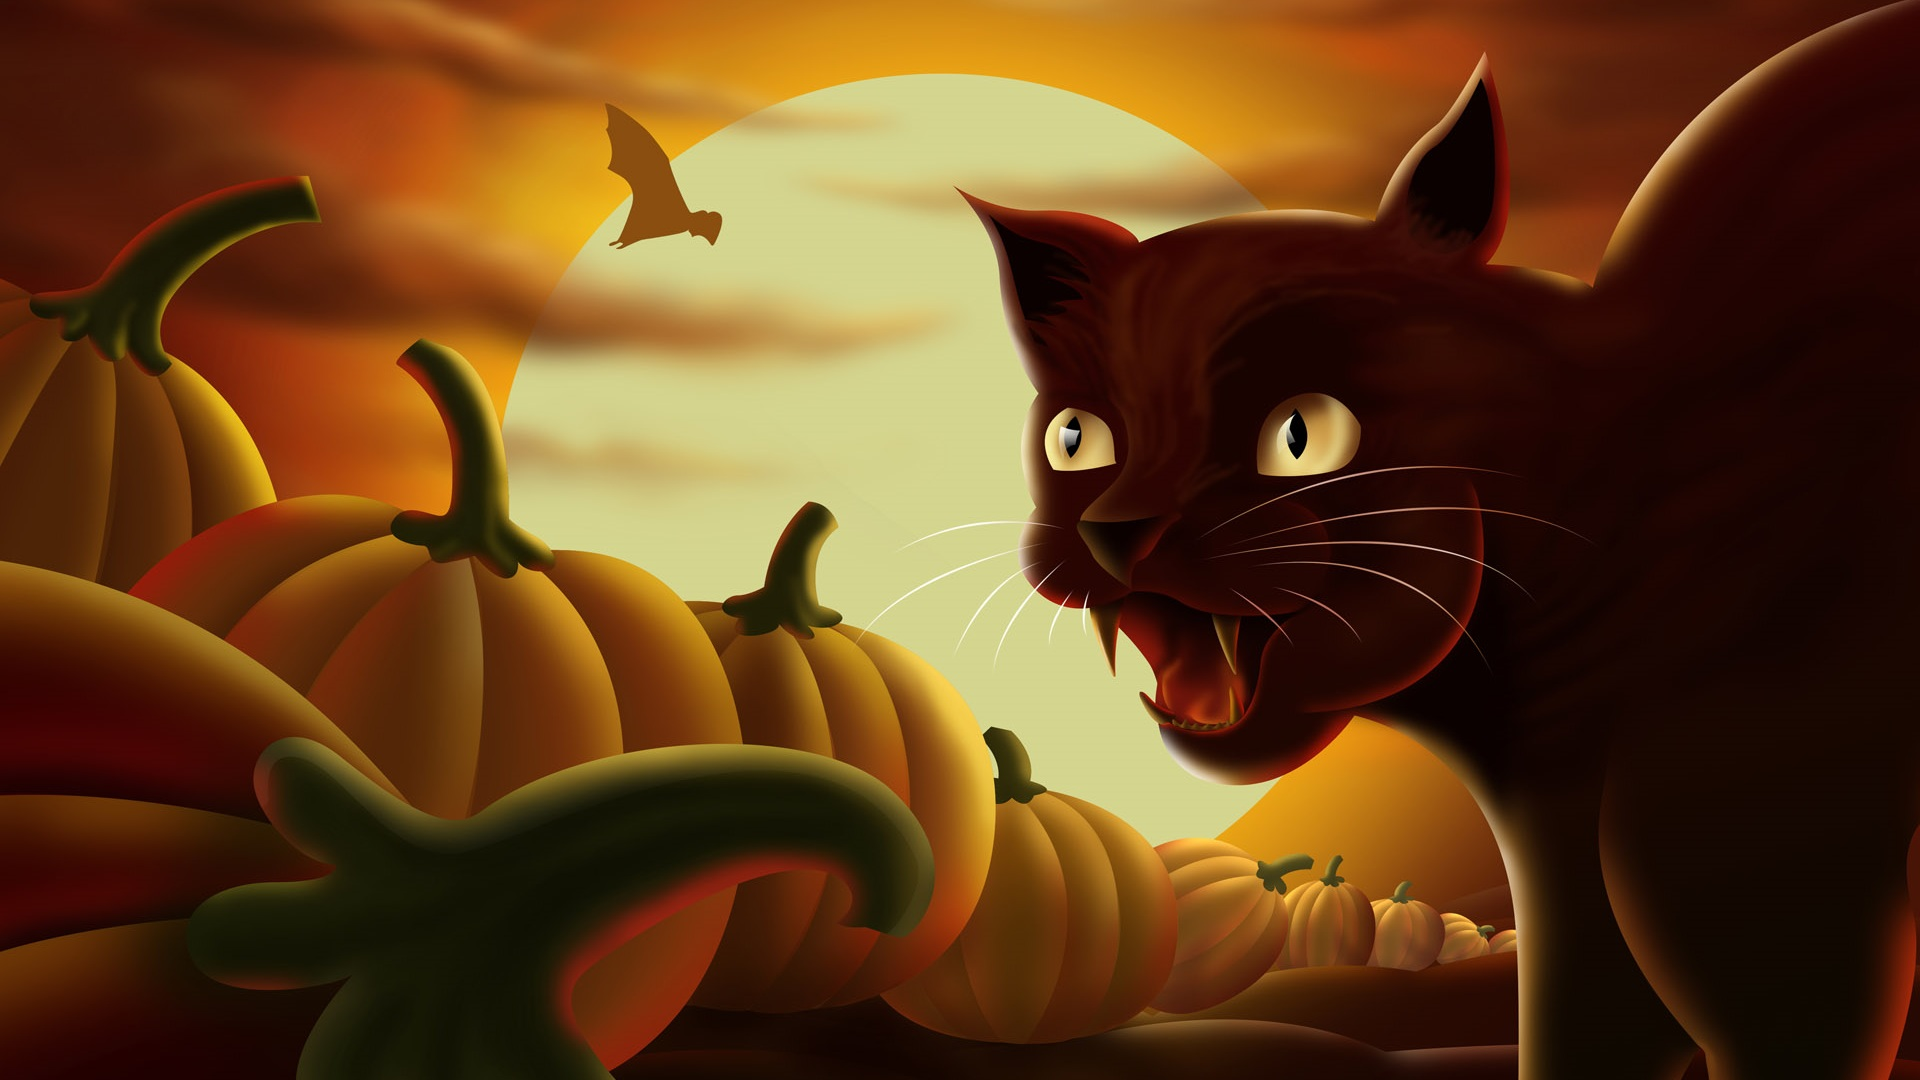 Halloween Wallpapers 29 Desktop Wallpapers Cool 1920x1080